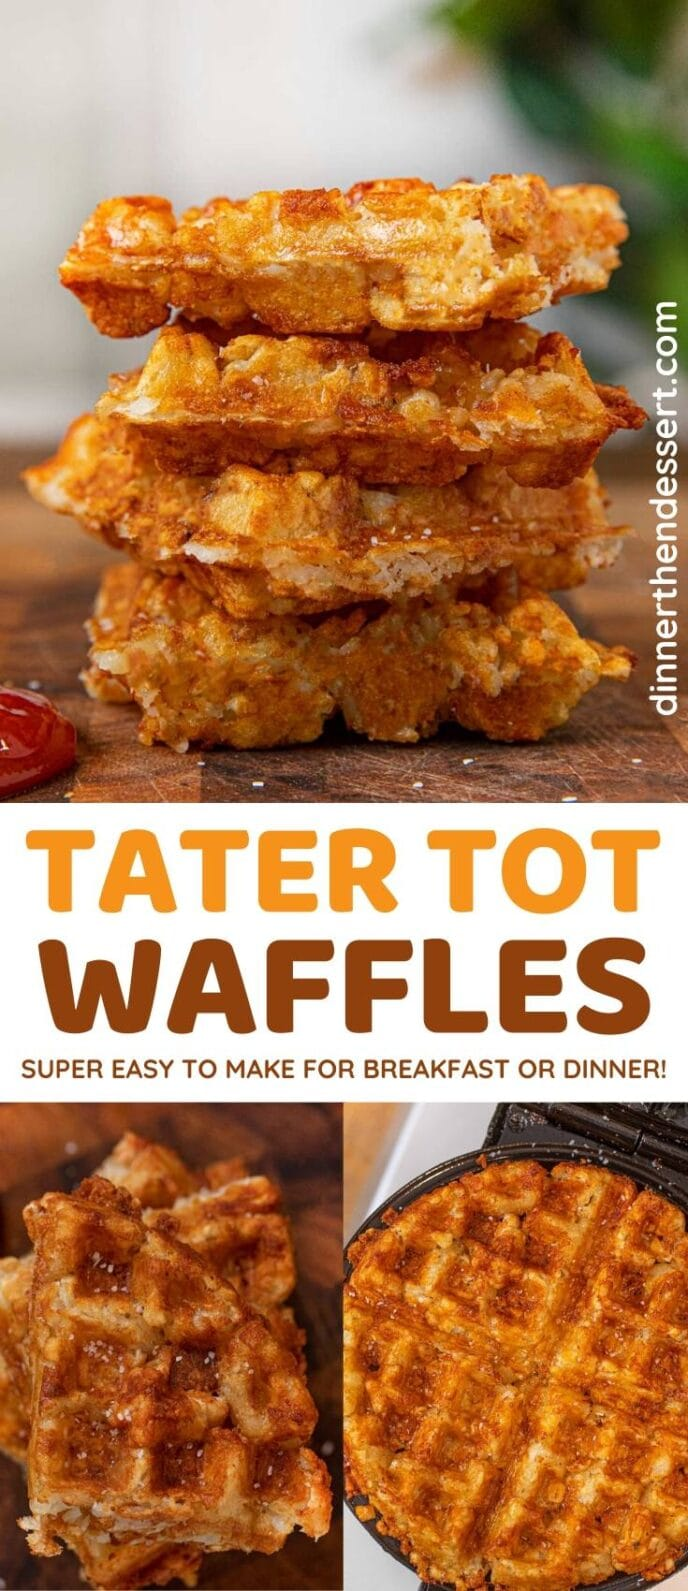 Tater Tot Waffles collage